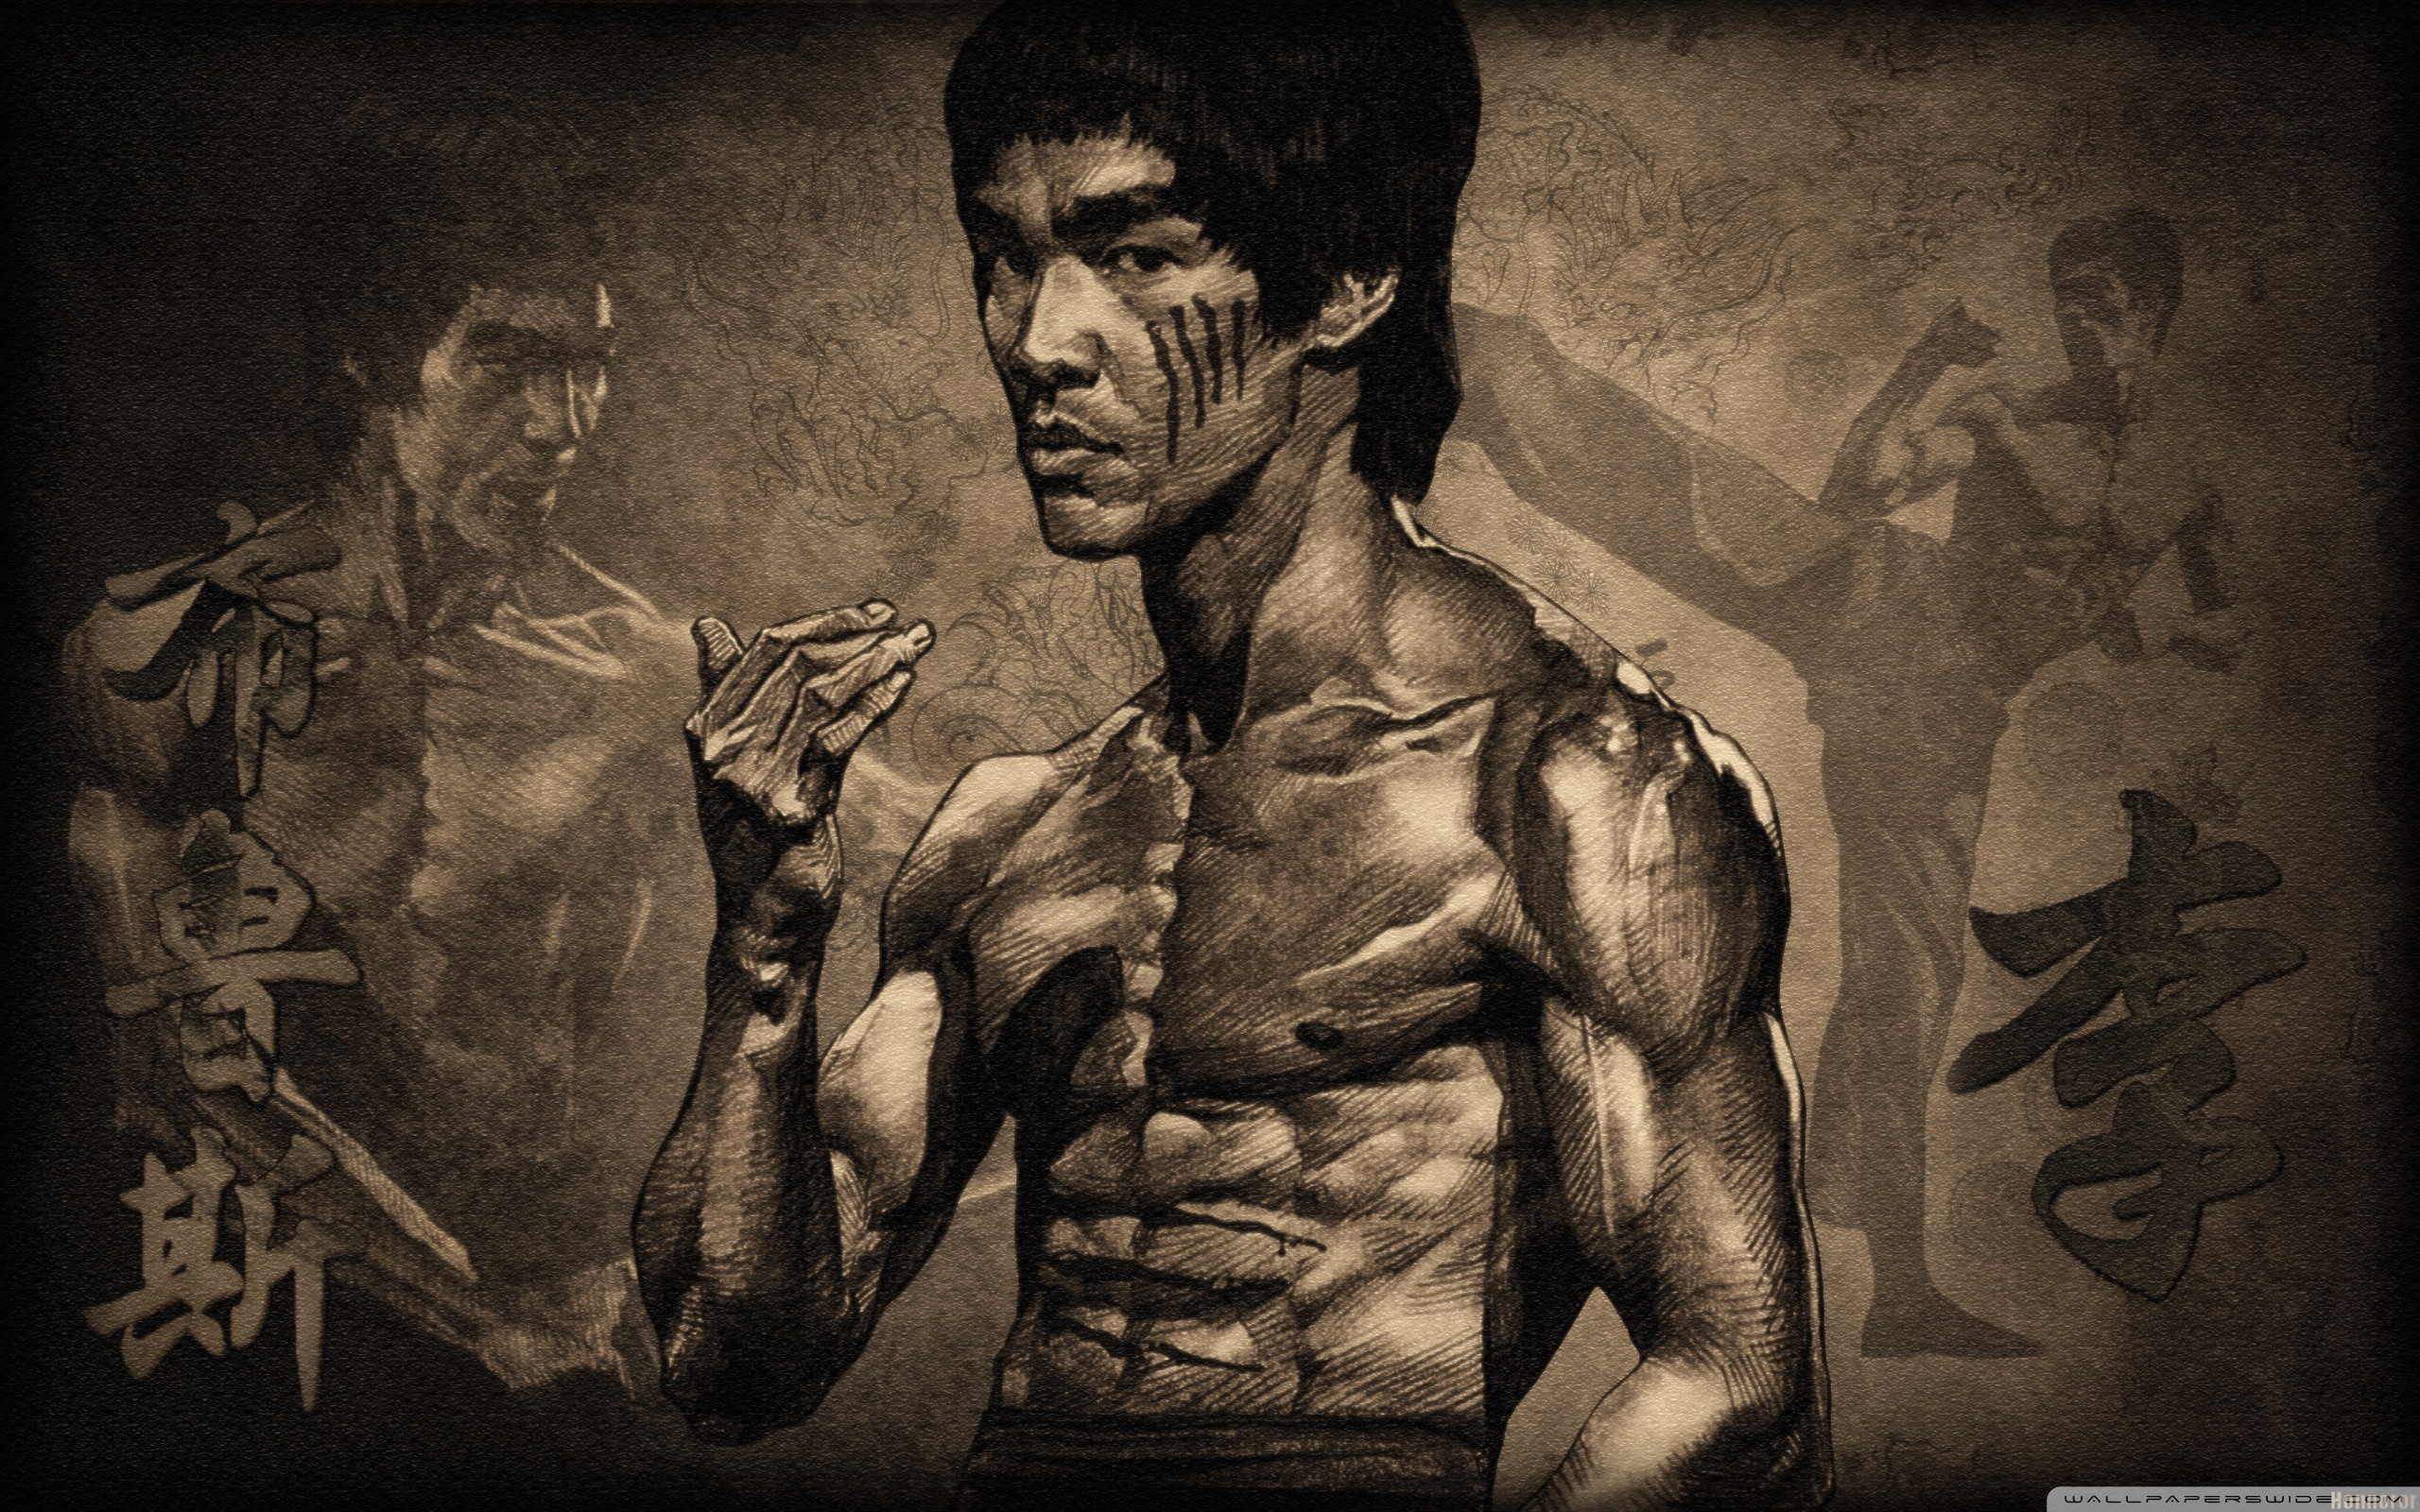 2560x1600 - Bruce Lee Wallpapers 25